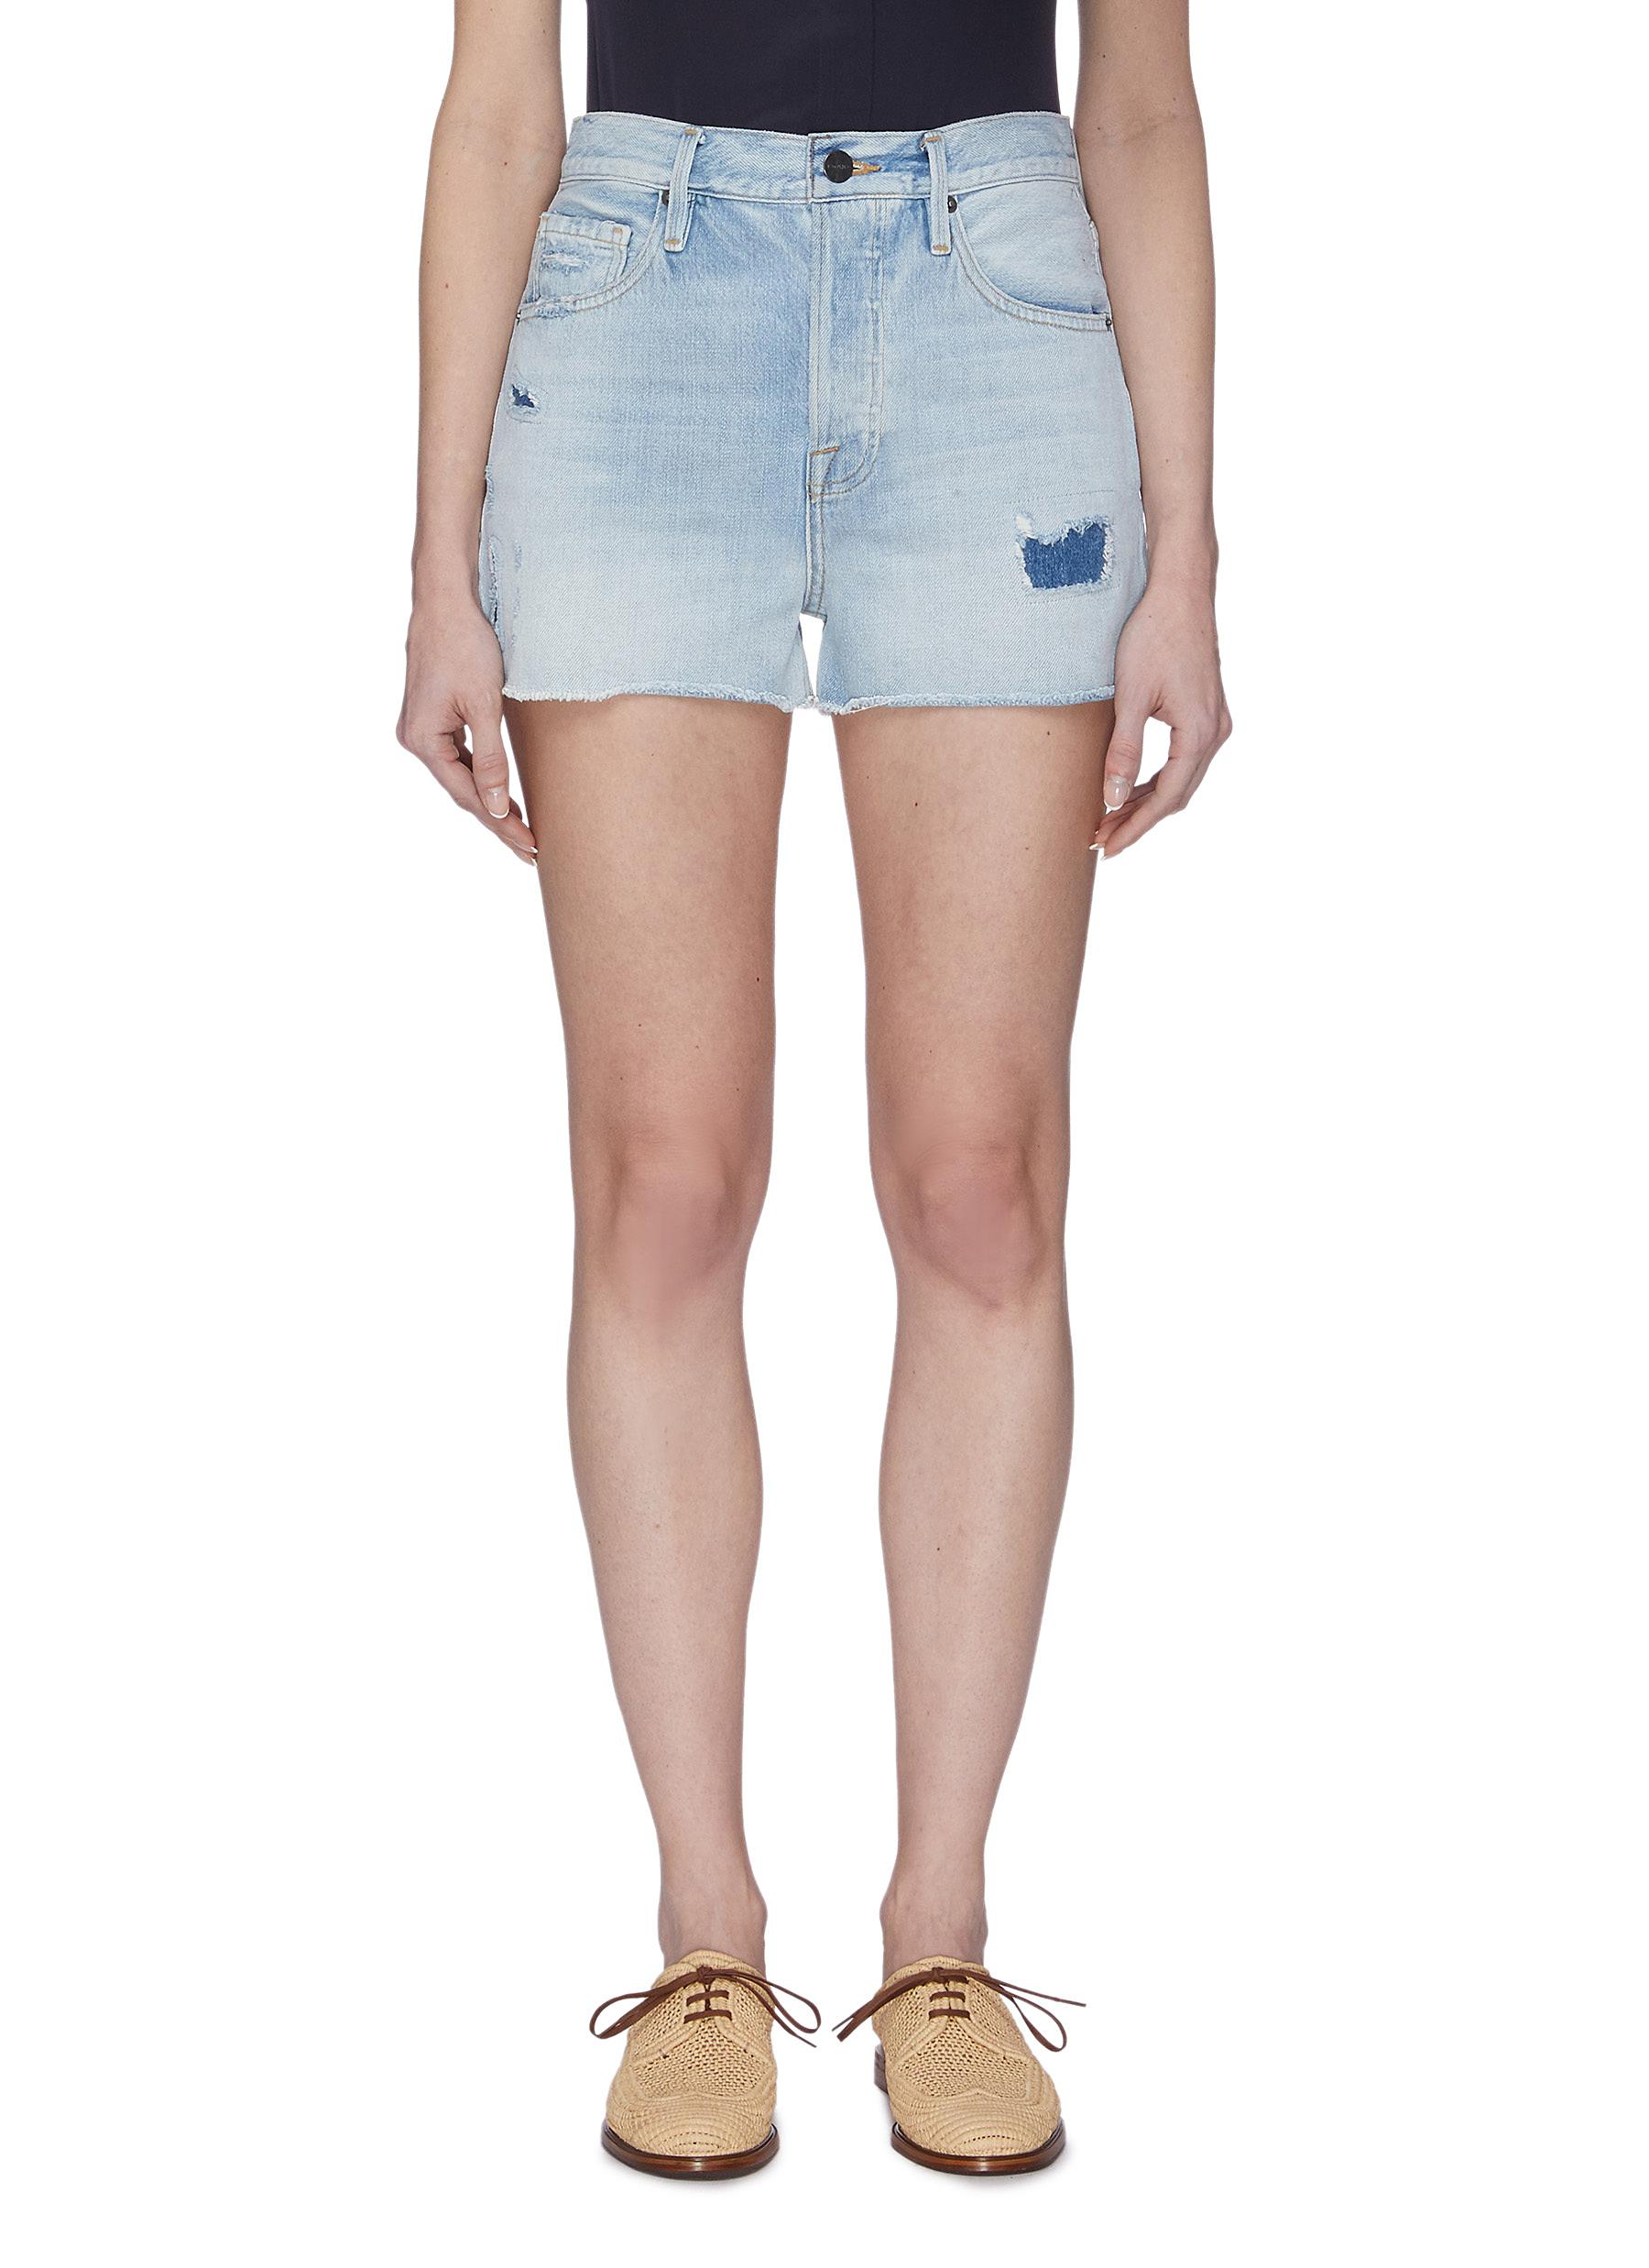 Buy Frame Denim Jeans Light Wash Patch Work Denim Shorts